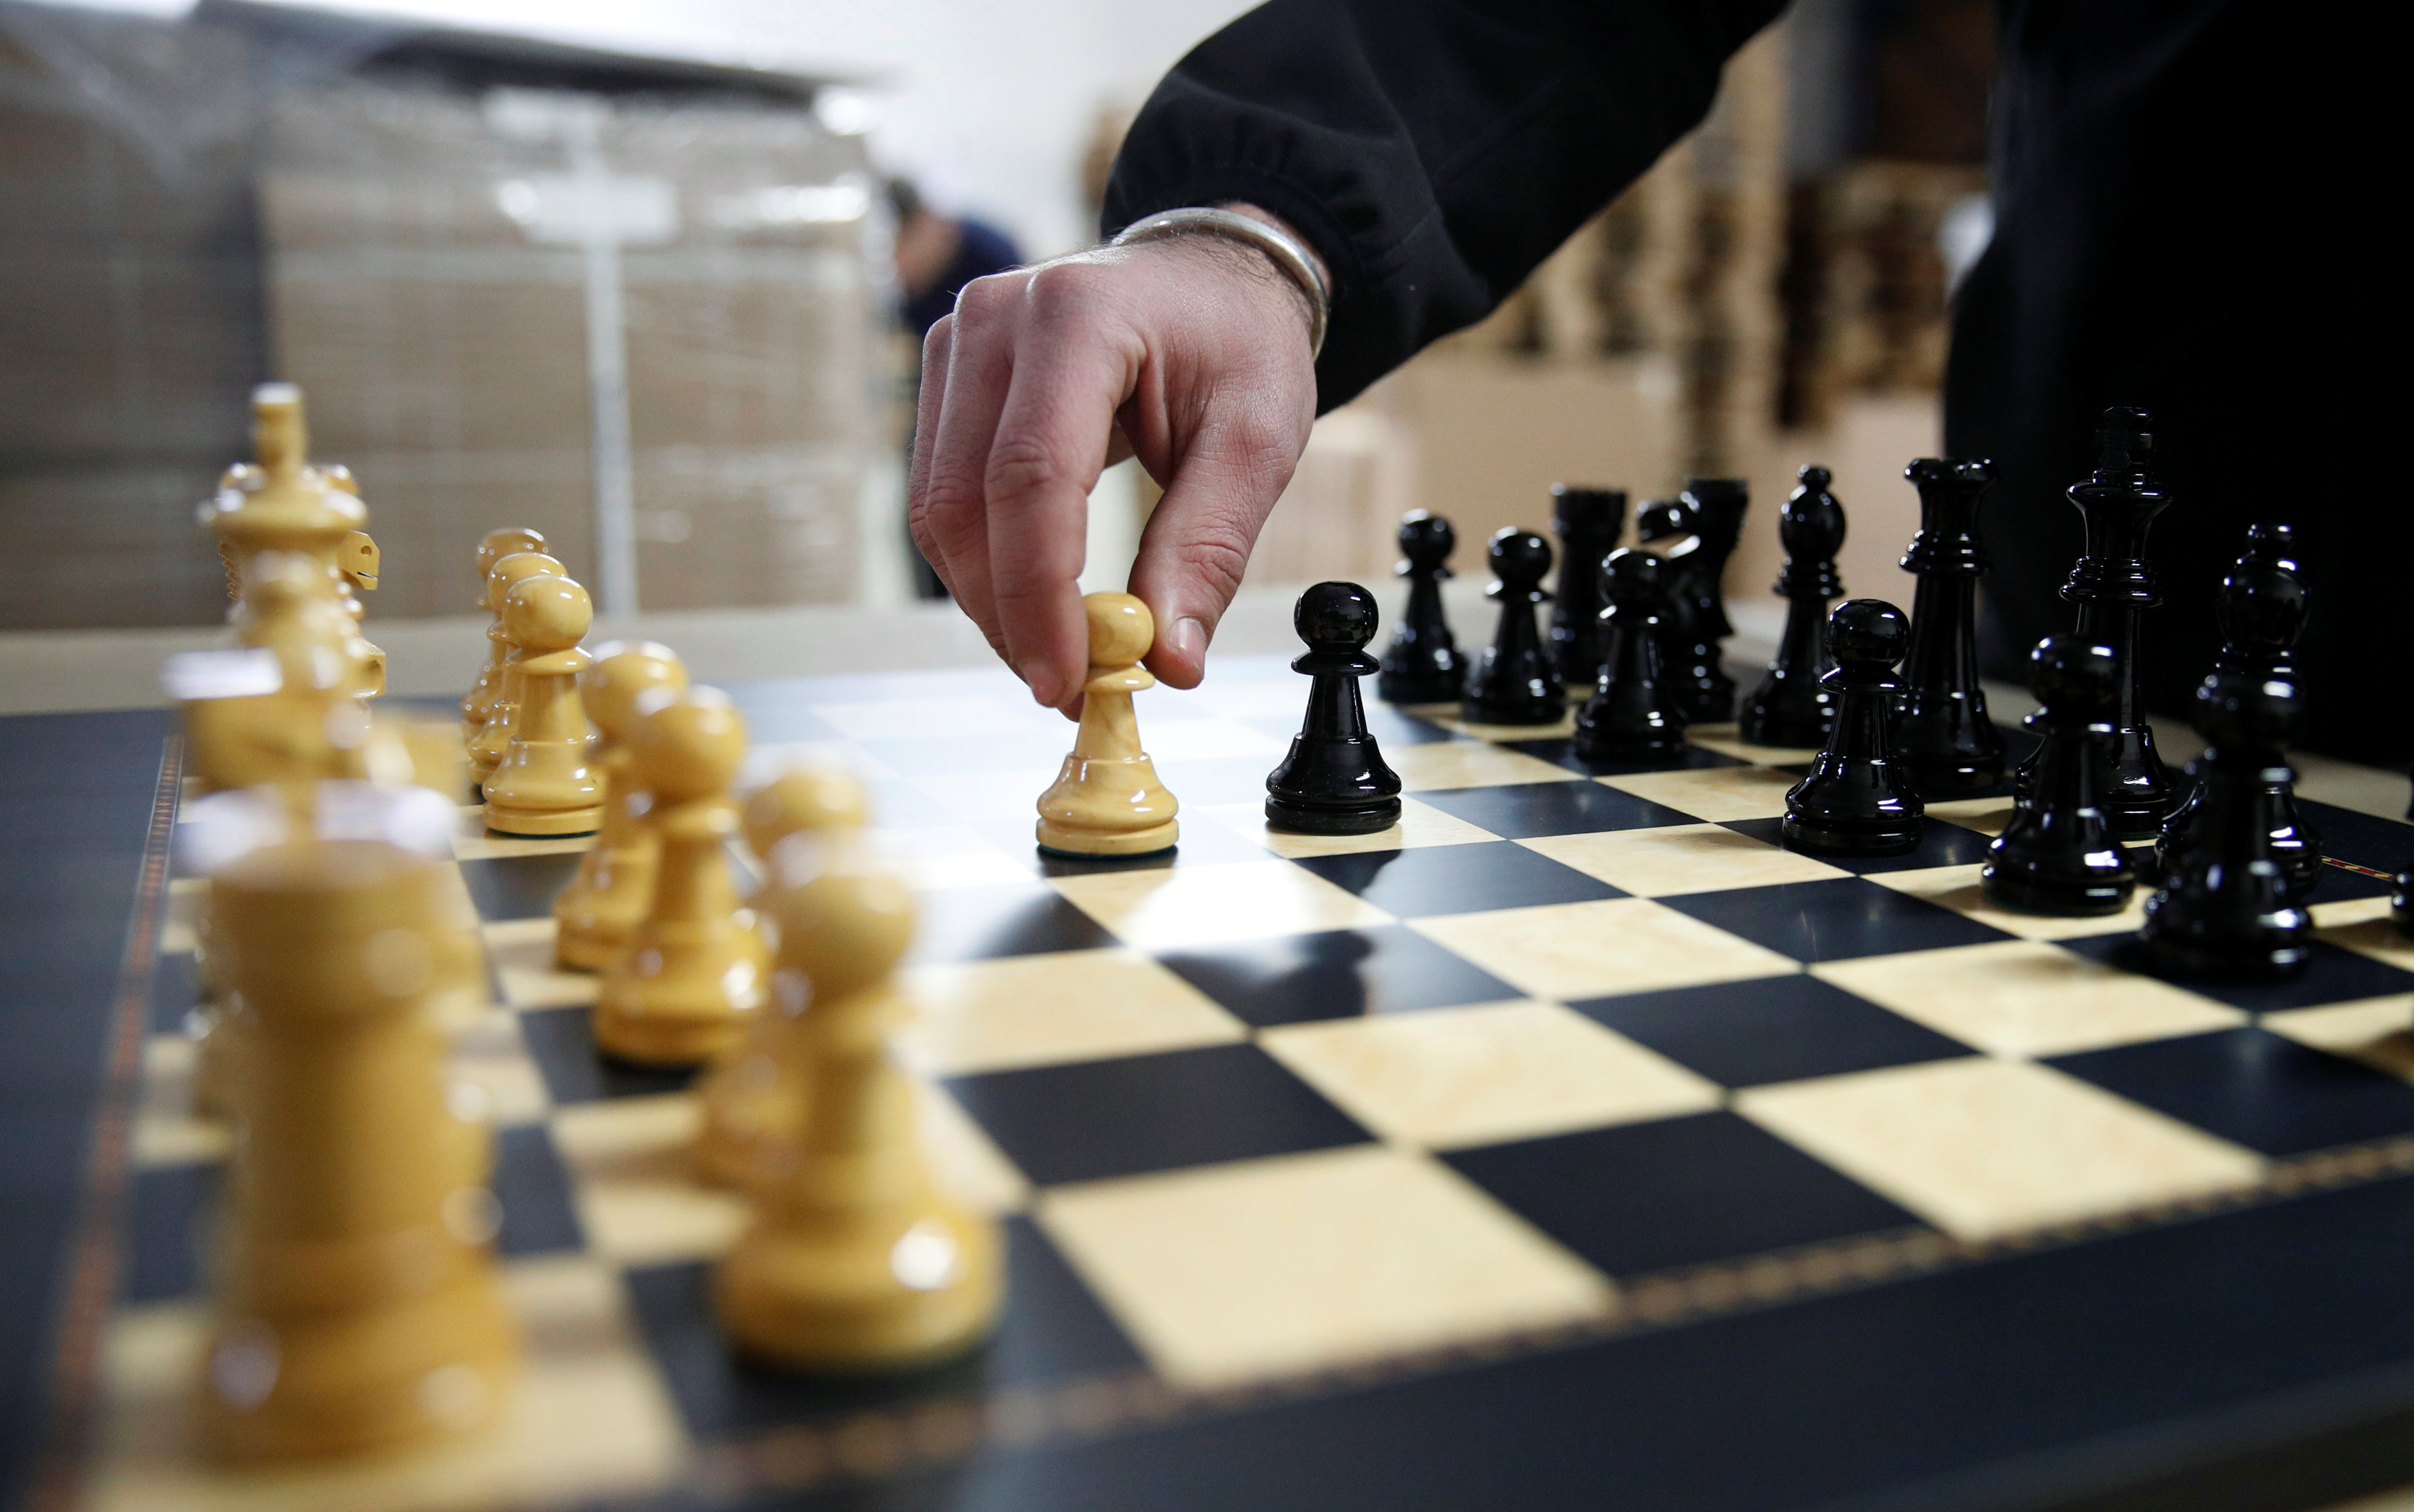 David Ferrer moves a chess pawn on a chessboard at the Rechapados Ferrer factory in La Garriga, north of Barcelona, Spain, February 11, 2021. REUTERS/Albert Gea